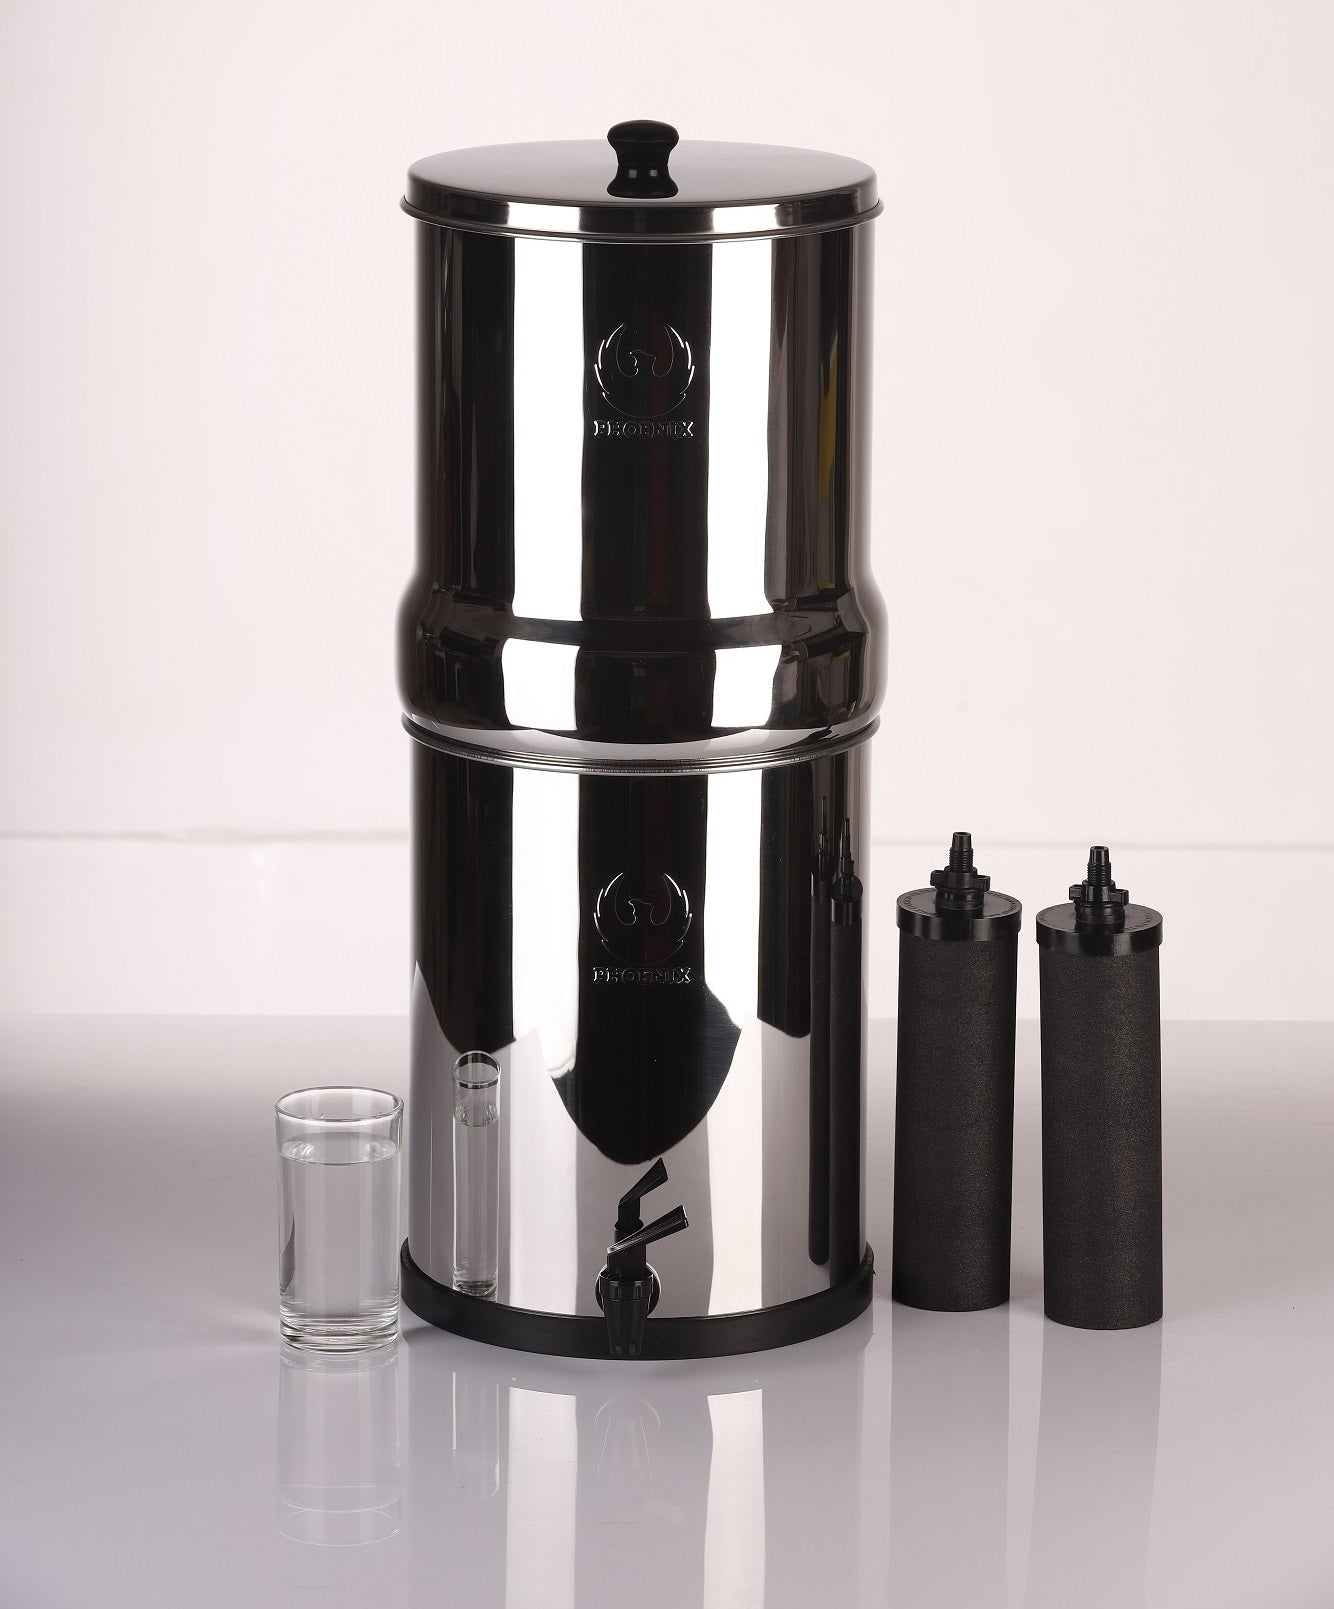 Phoenix Gravity Stainless Steel Water Filter and Purifier